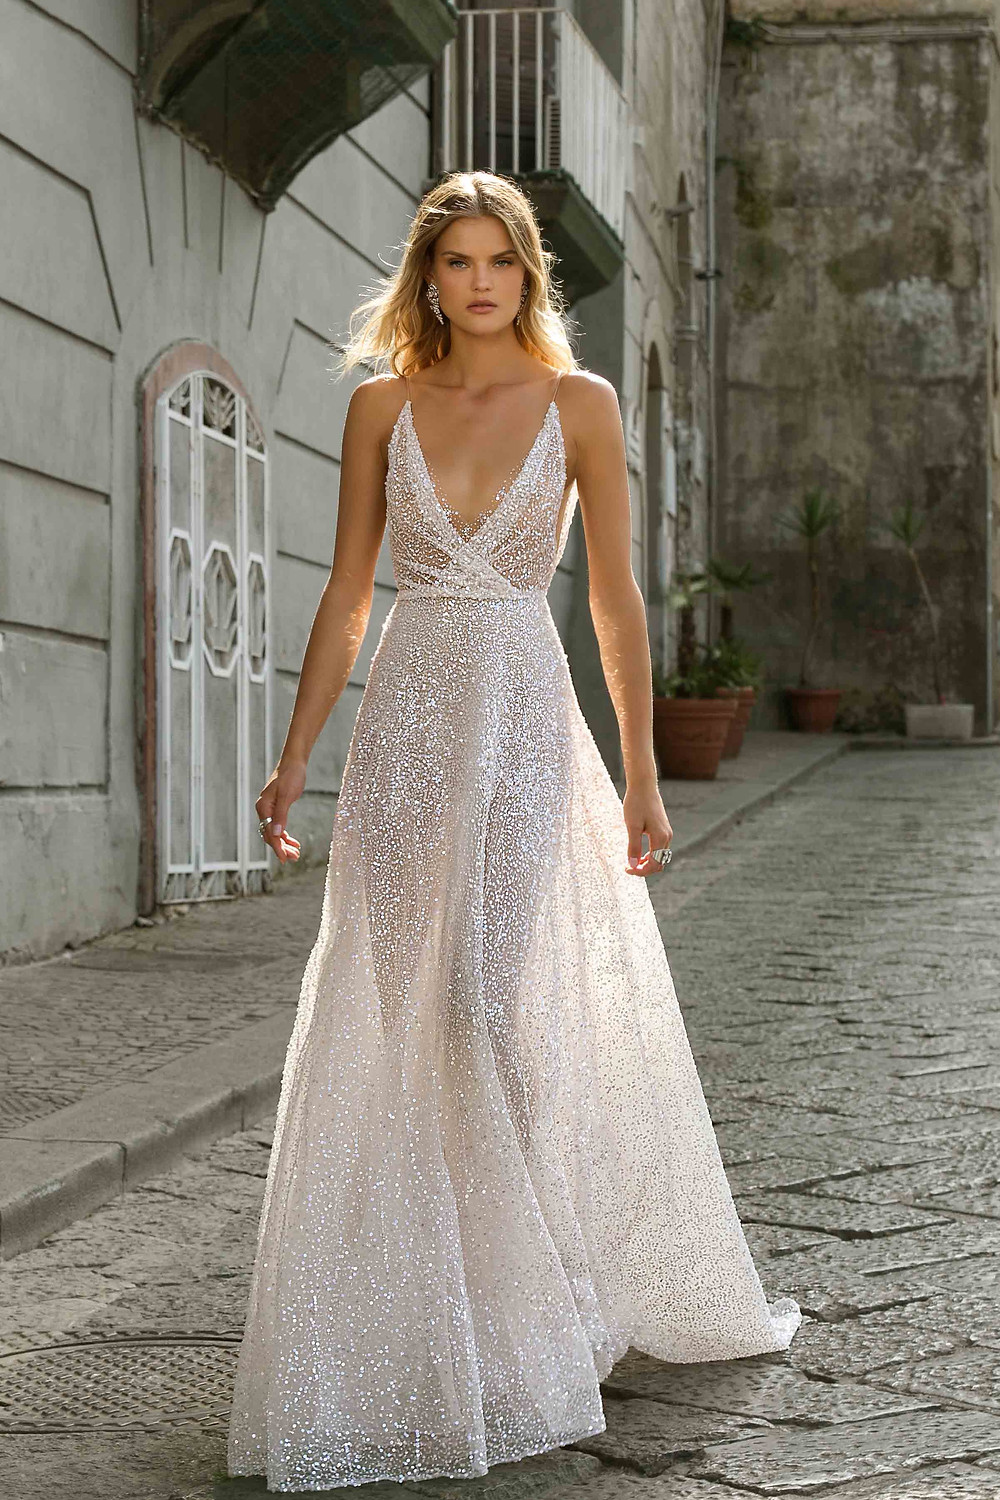 A sparkly A-line wedding dress, with deep v neckline, thin straps and crystals